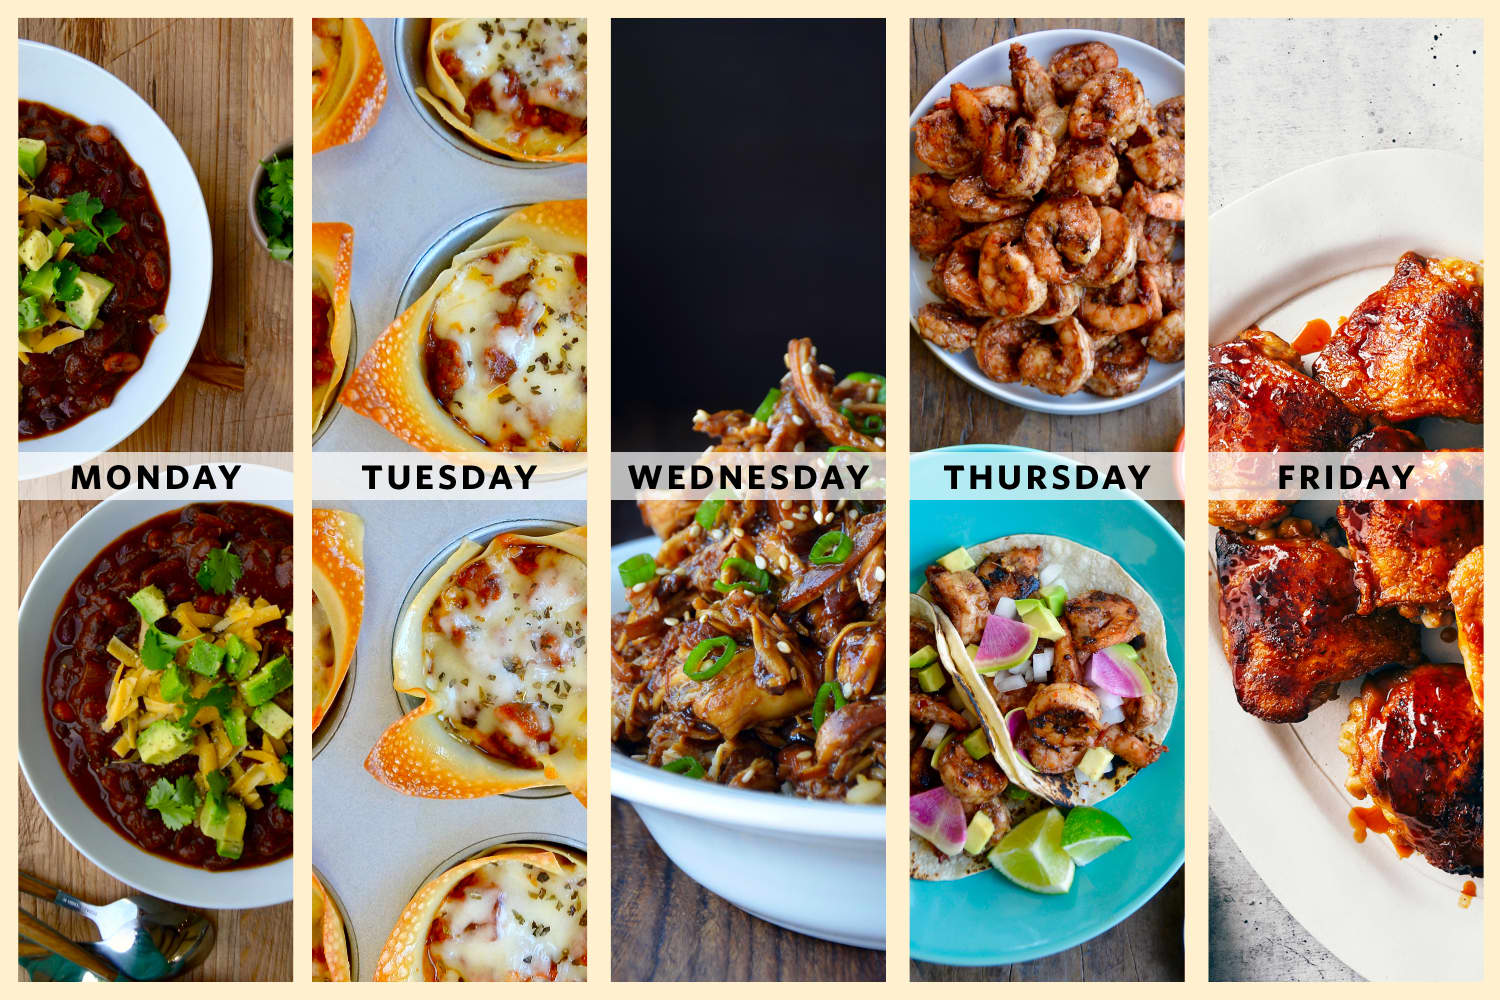 A Week of Easy Family Dinners from Kelly Senyei of Just a Taste